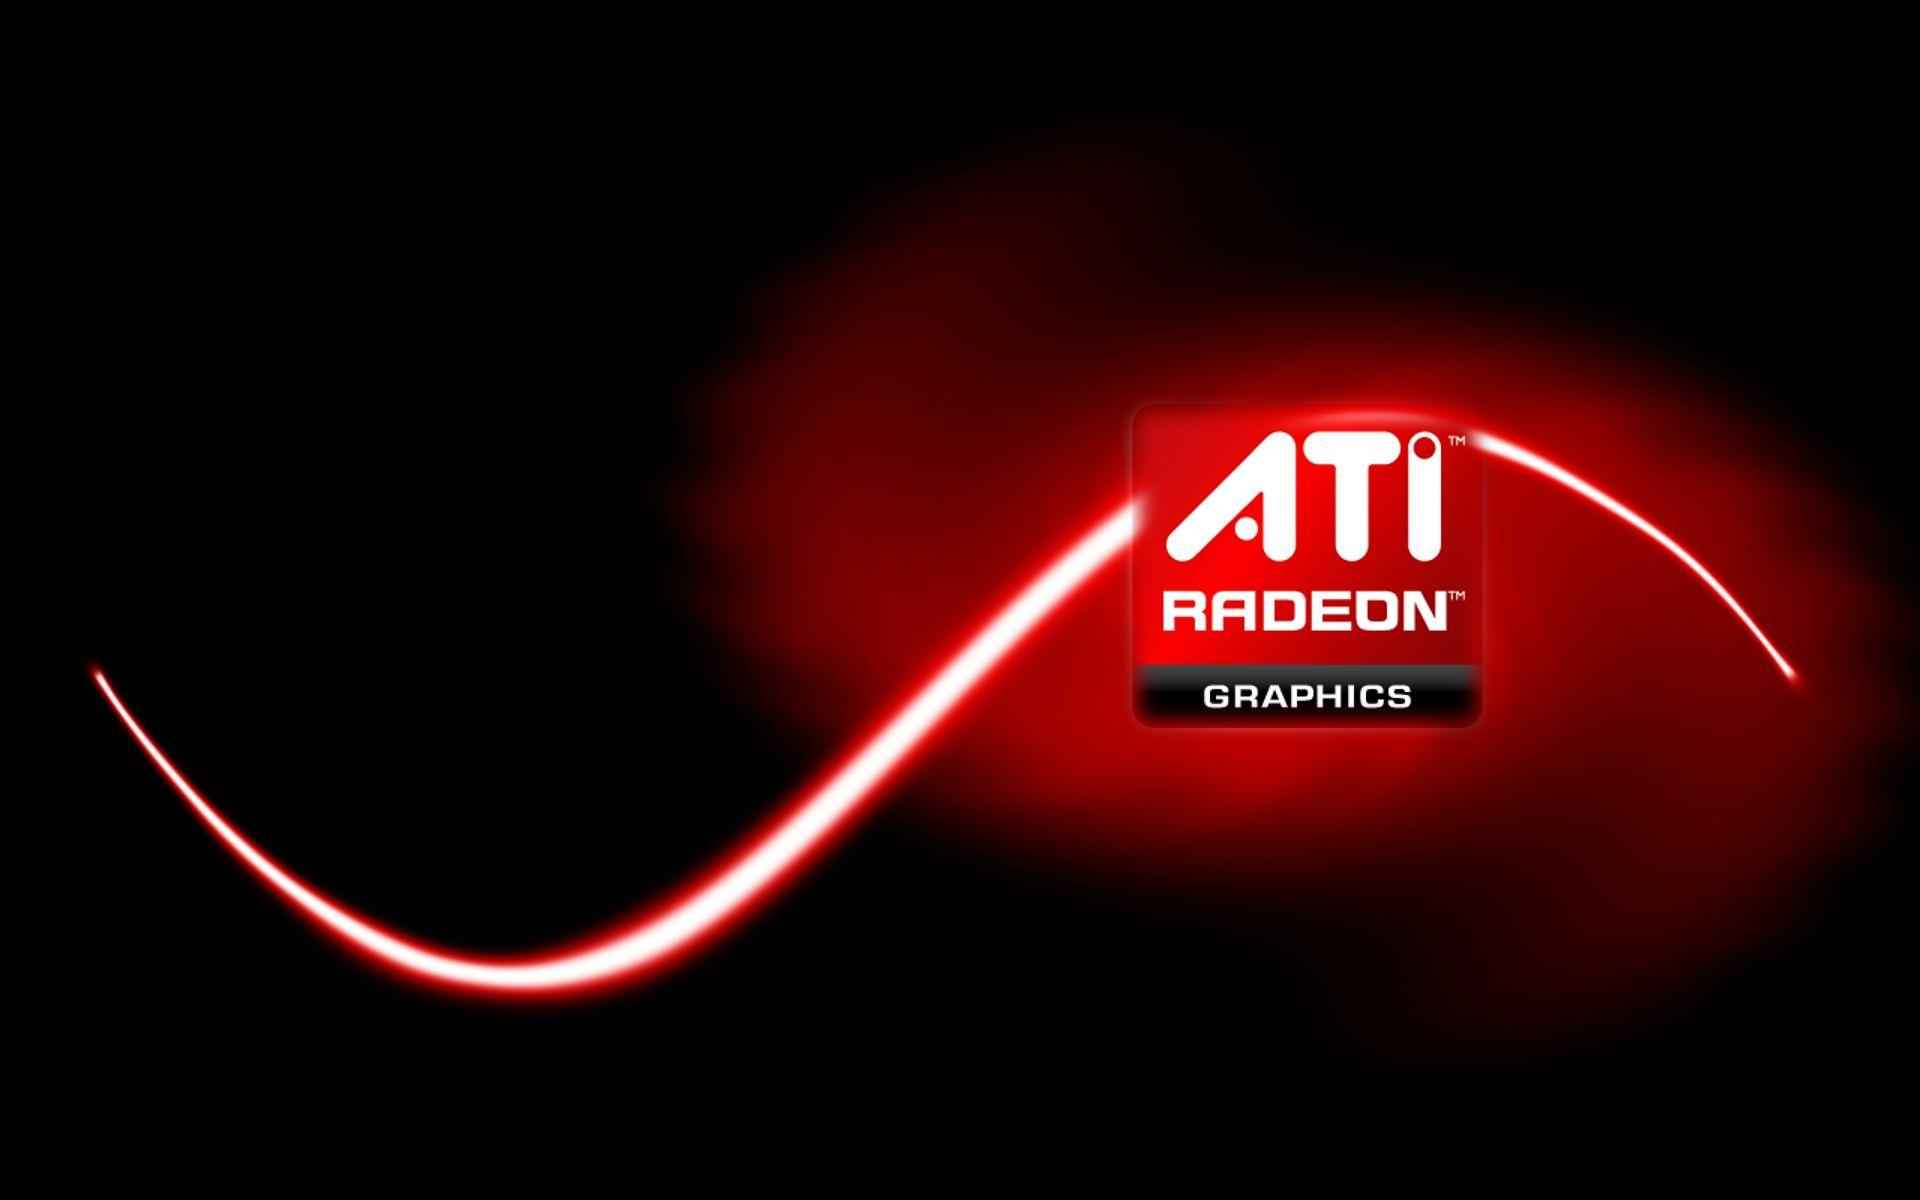 amd radeon wallpapers hd - photo #8